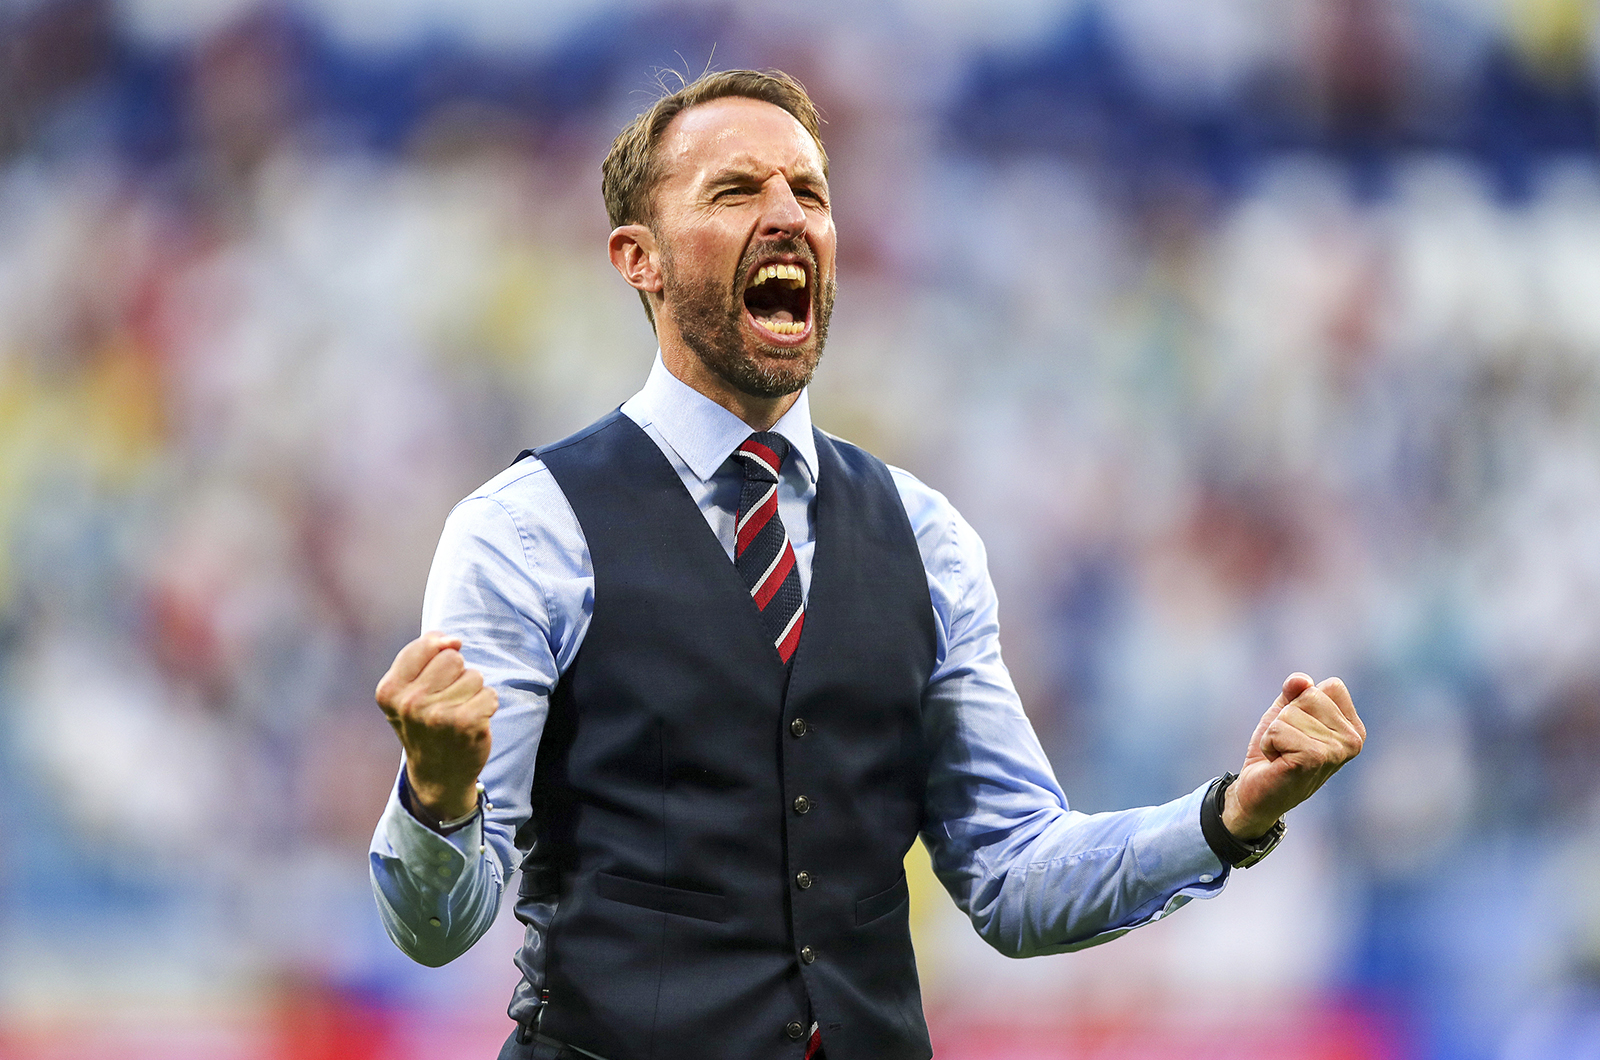 Gareth Southgate England manager celebrates at Russia World Cup